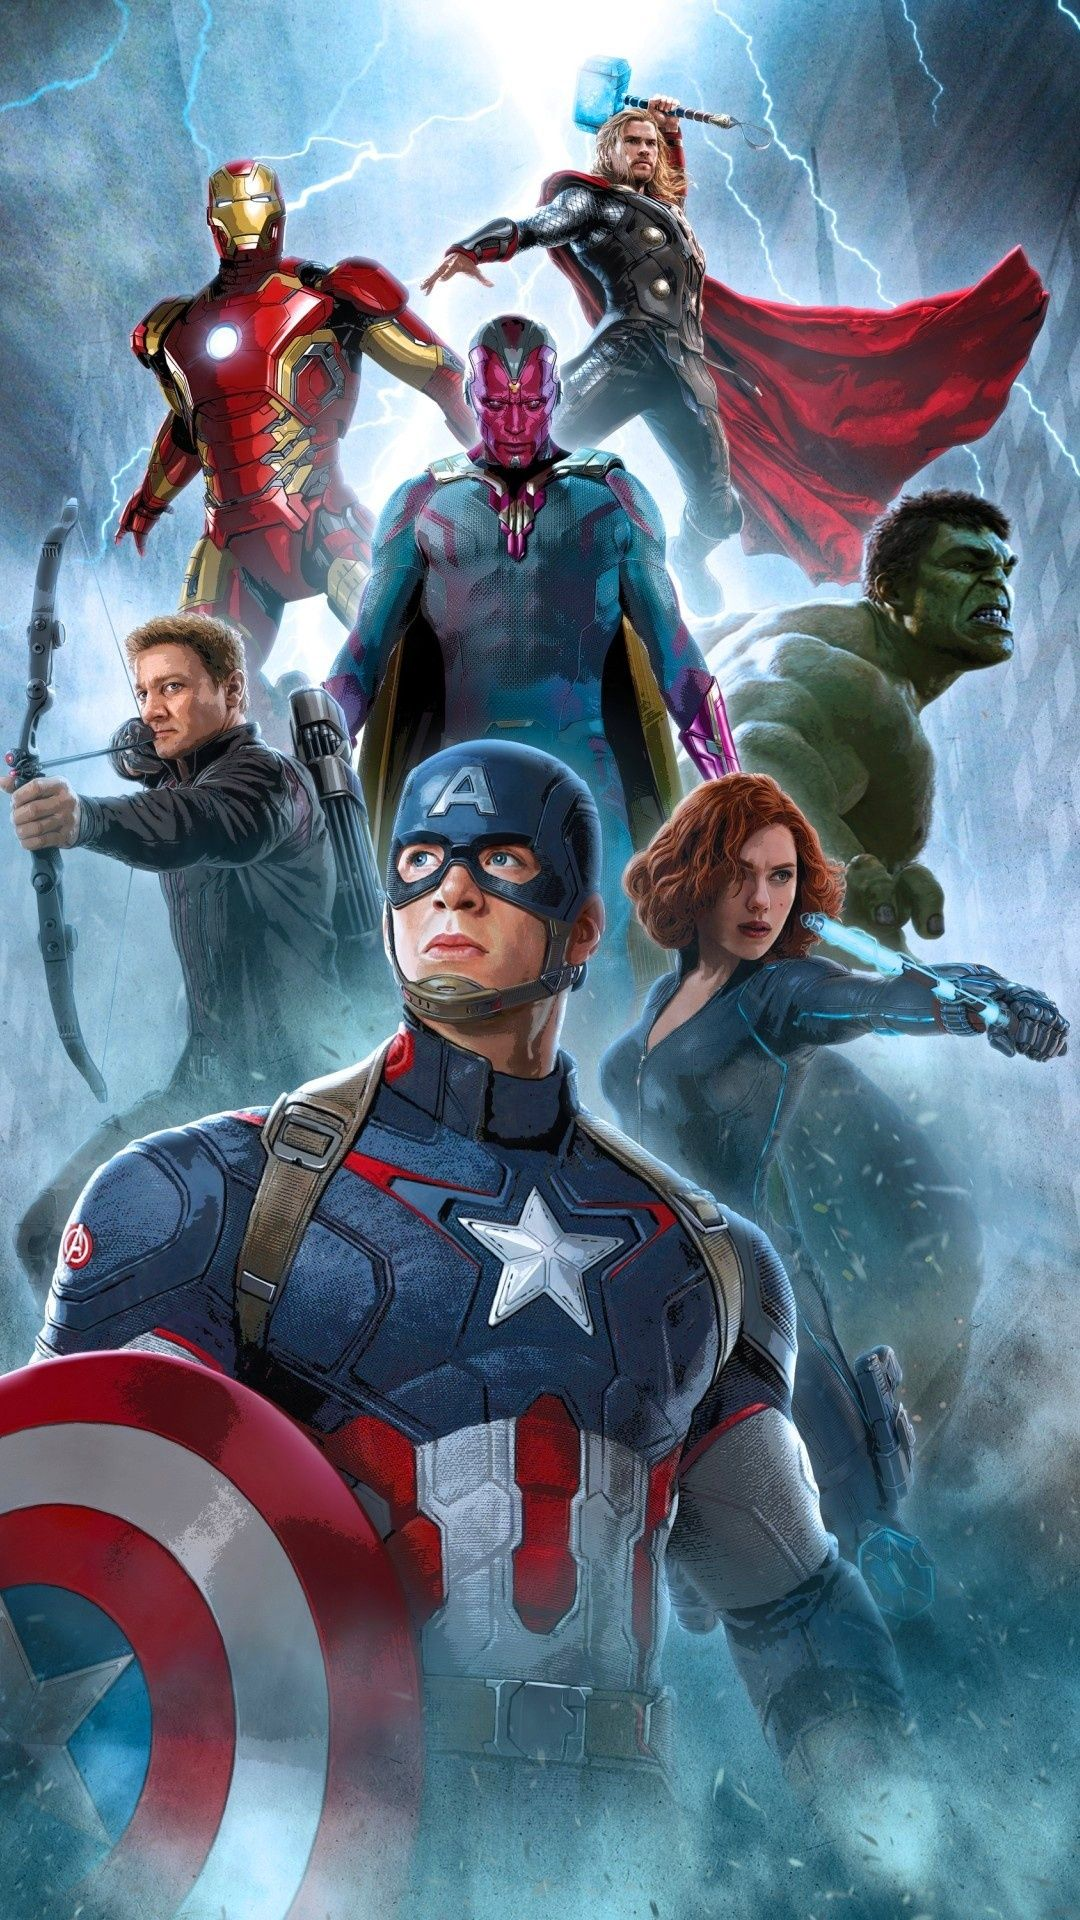 Avengers Android Wallpapers   Top Avengers Android 1080x1920